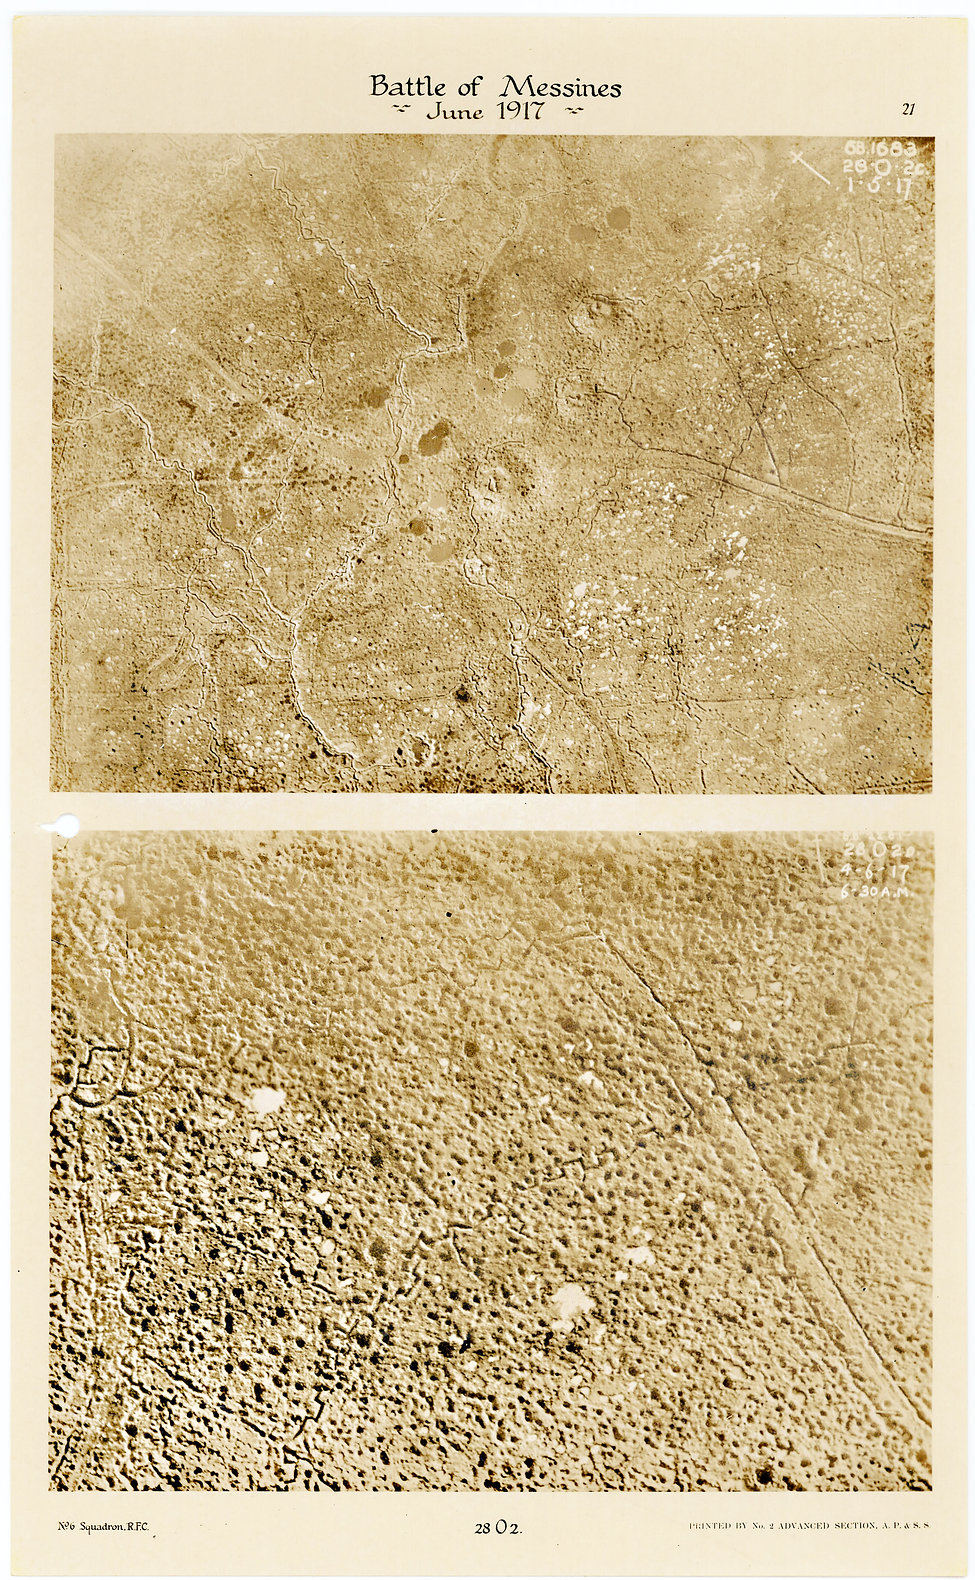 6 Squadron aerial photos of St Eloi South, taken by 6 Squadron before and after the pre-bombardment at Battle of Messines, 1917